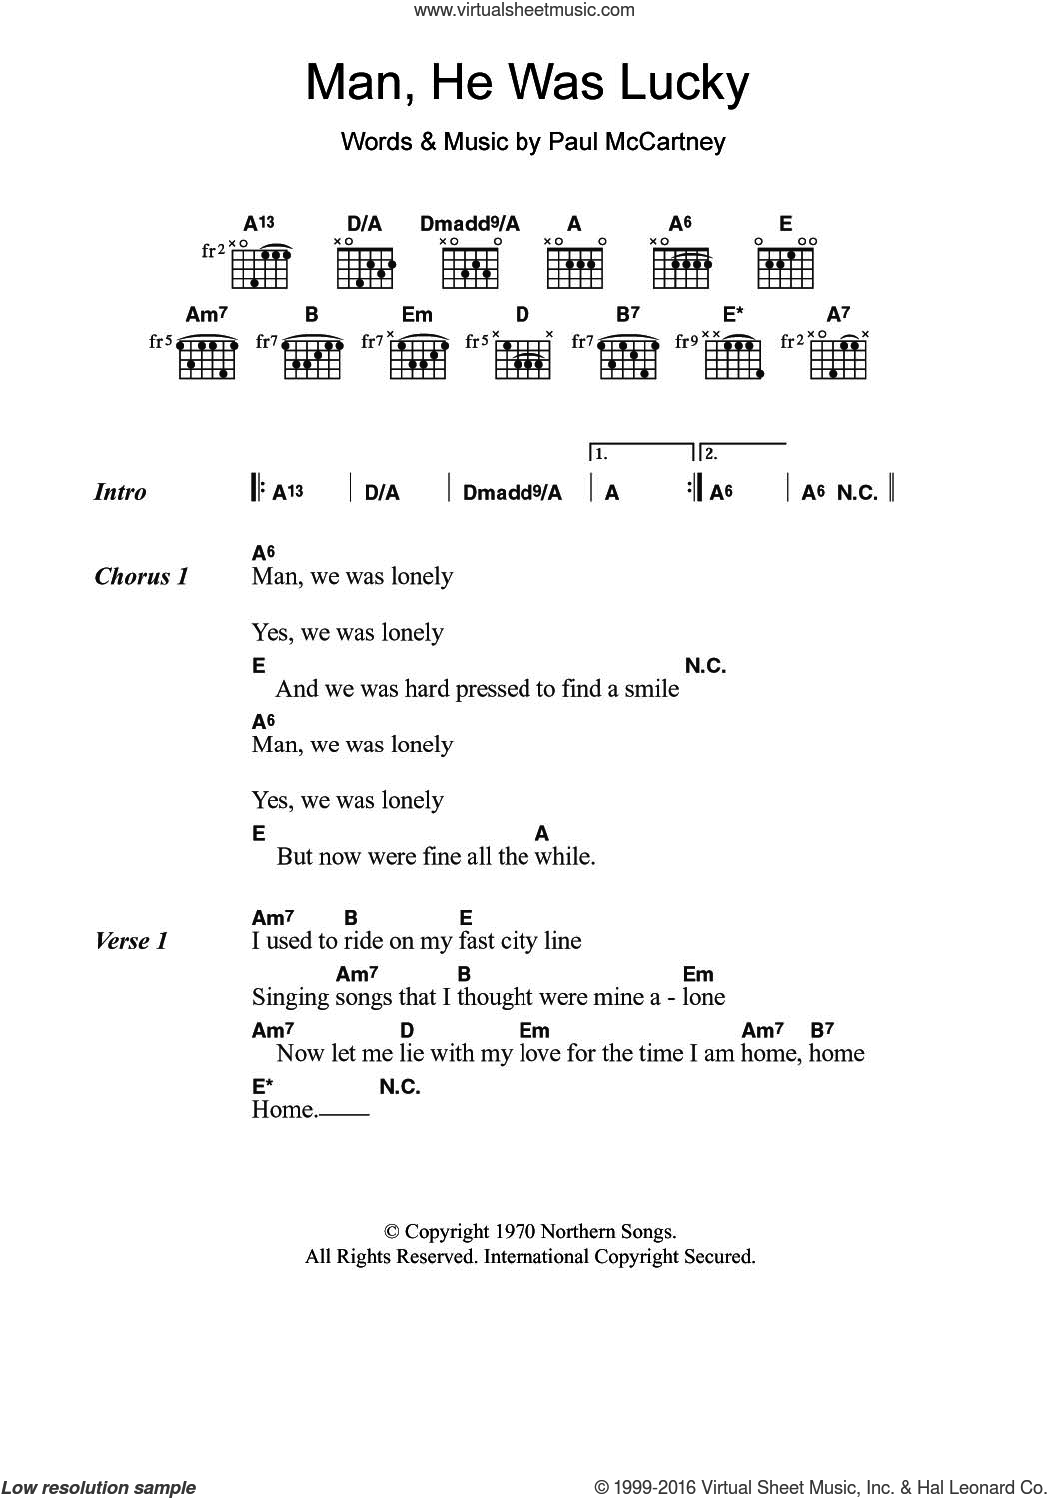 Man He Was Lucky sheet music for guitar (chords) by Paul McCartney, intermediate skill level